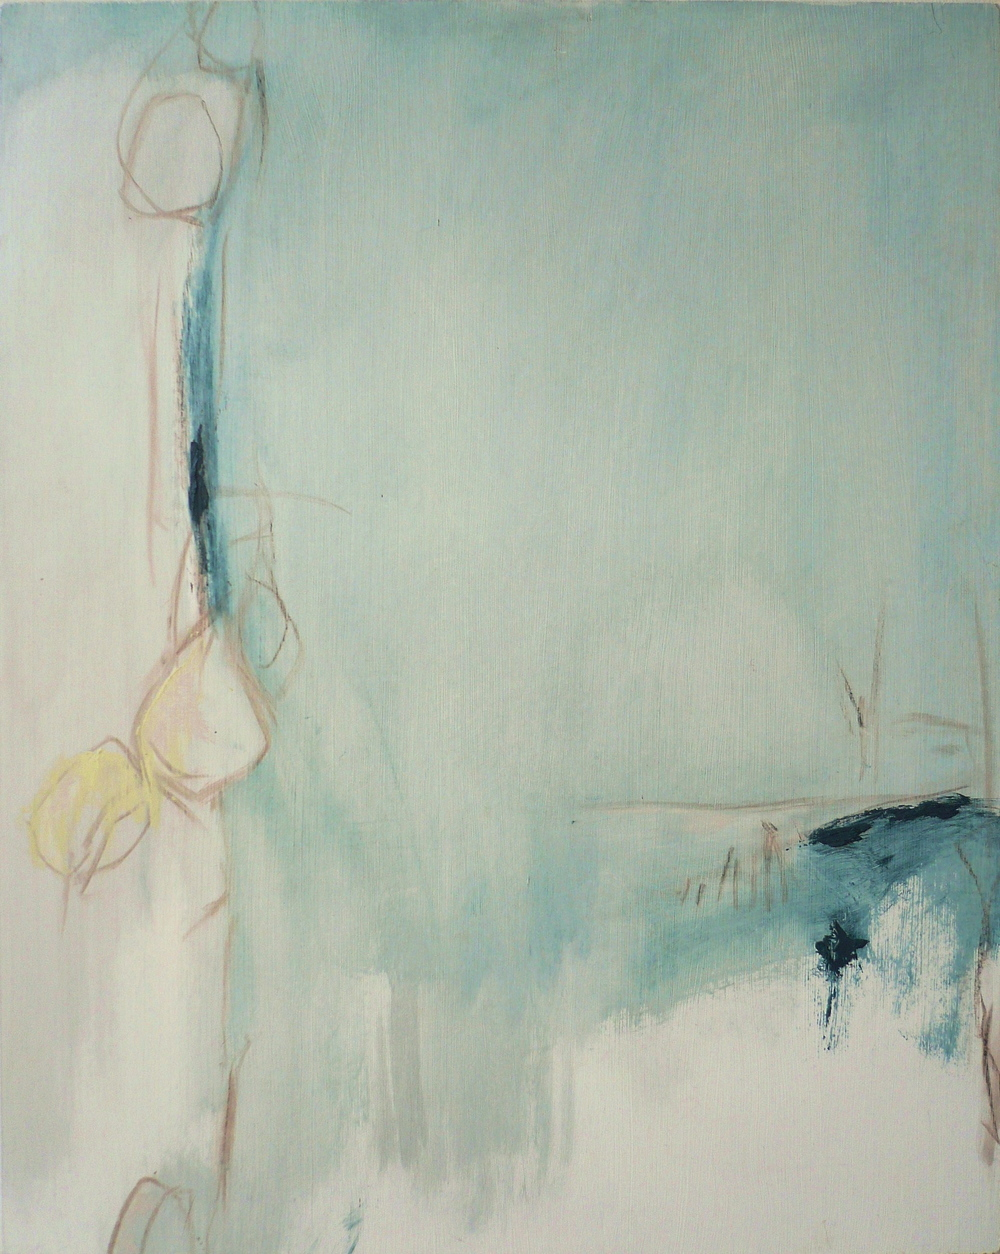 Cerulean series G, 2006  /  Oil on panel, 24 x 30